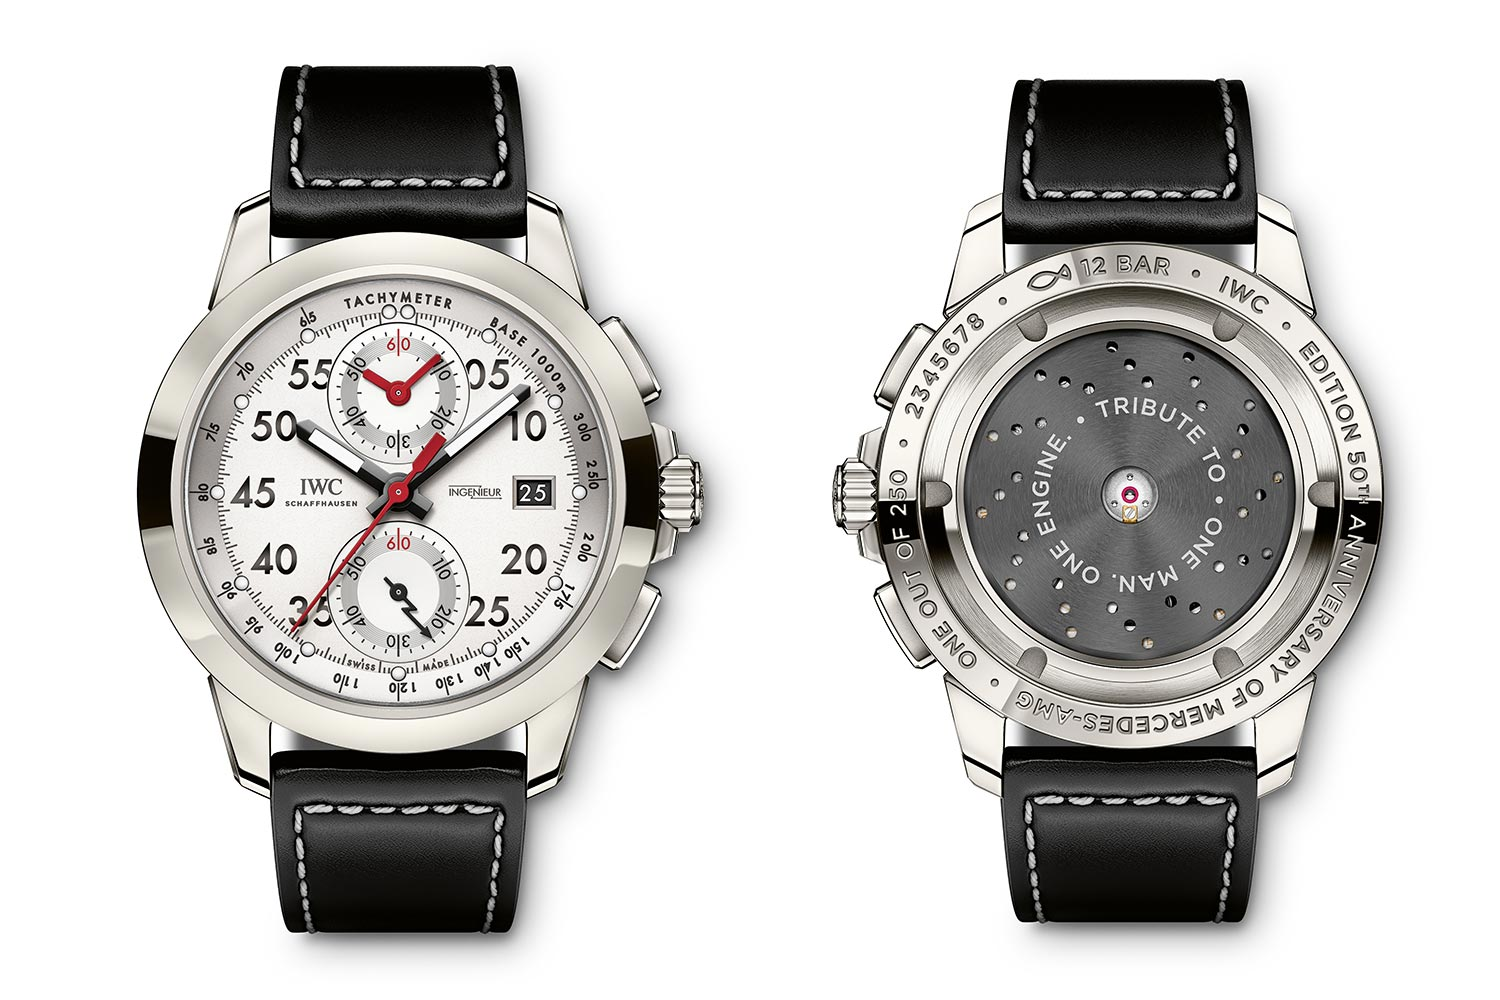 IWC Ingenieur Chronograph Special Edition AMG 50th Anniversary